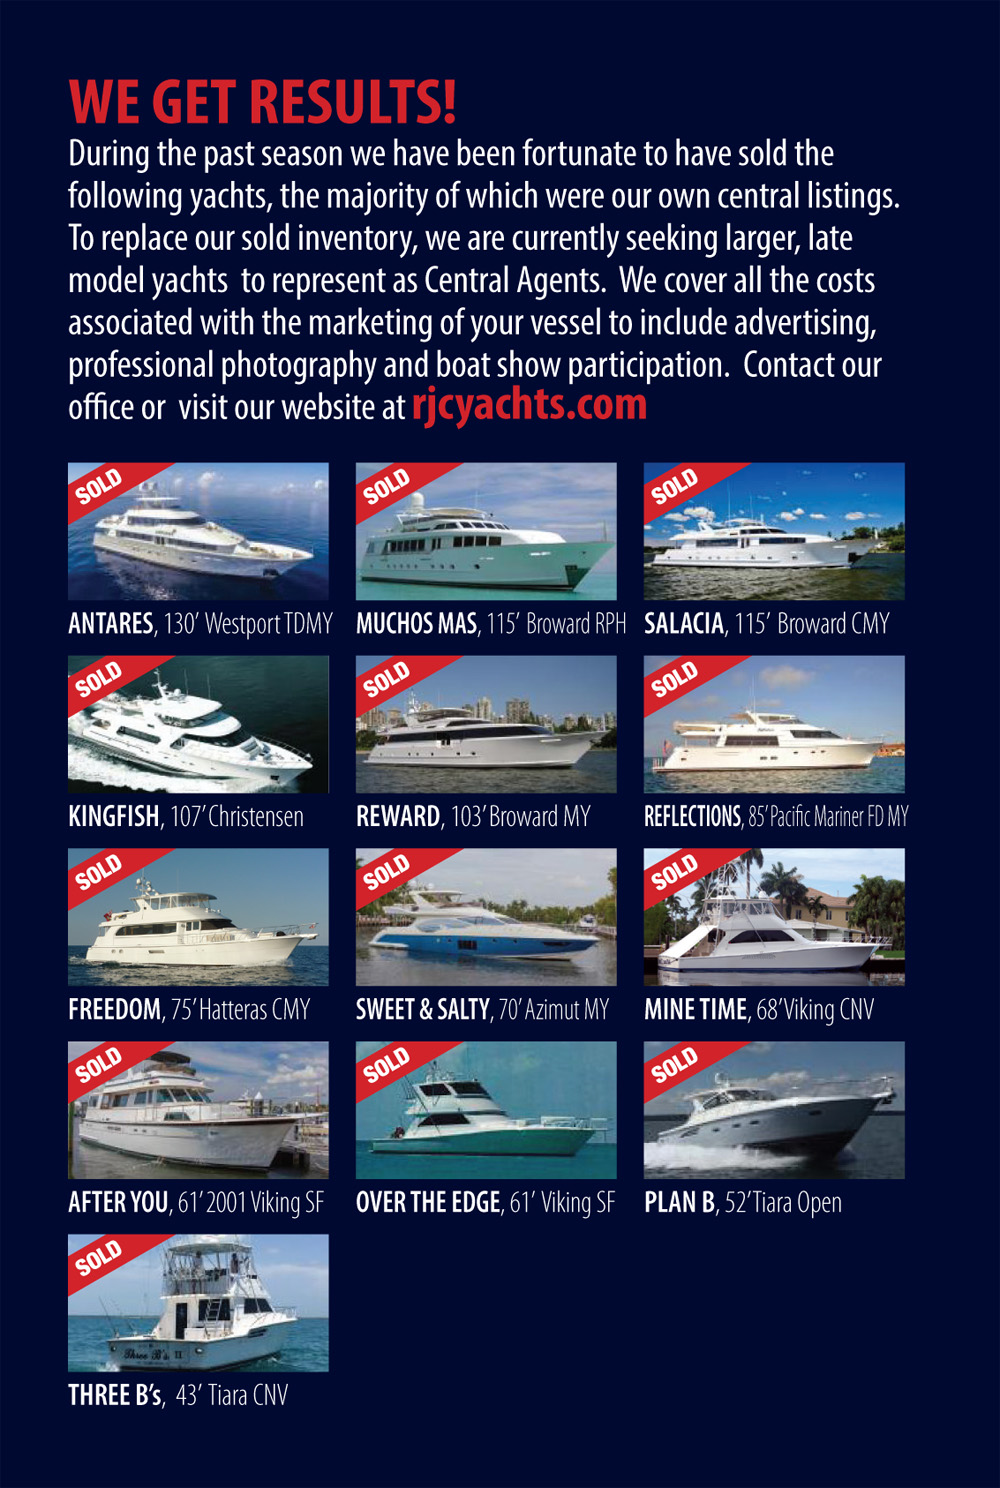 RJC Yacht Sales & Charters Announces (13) Vessels Sold Year